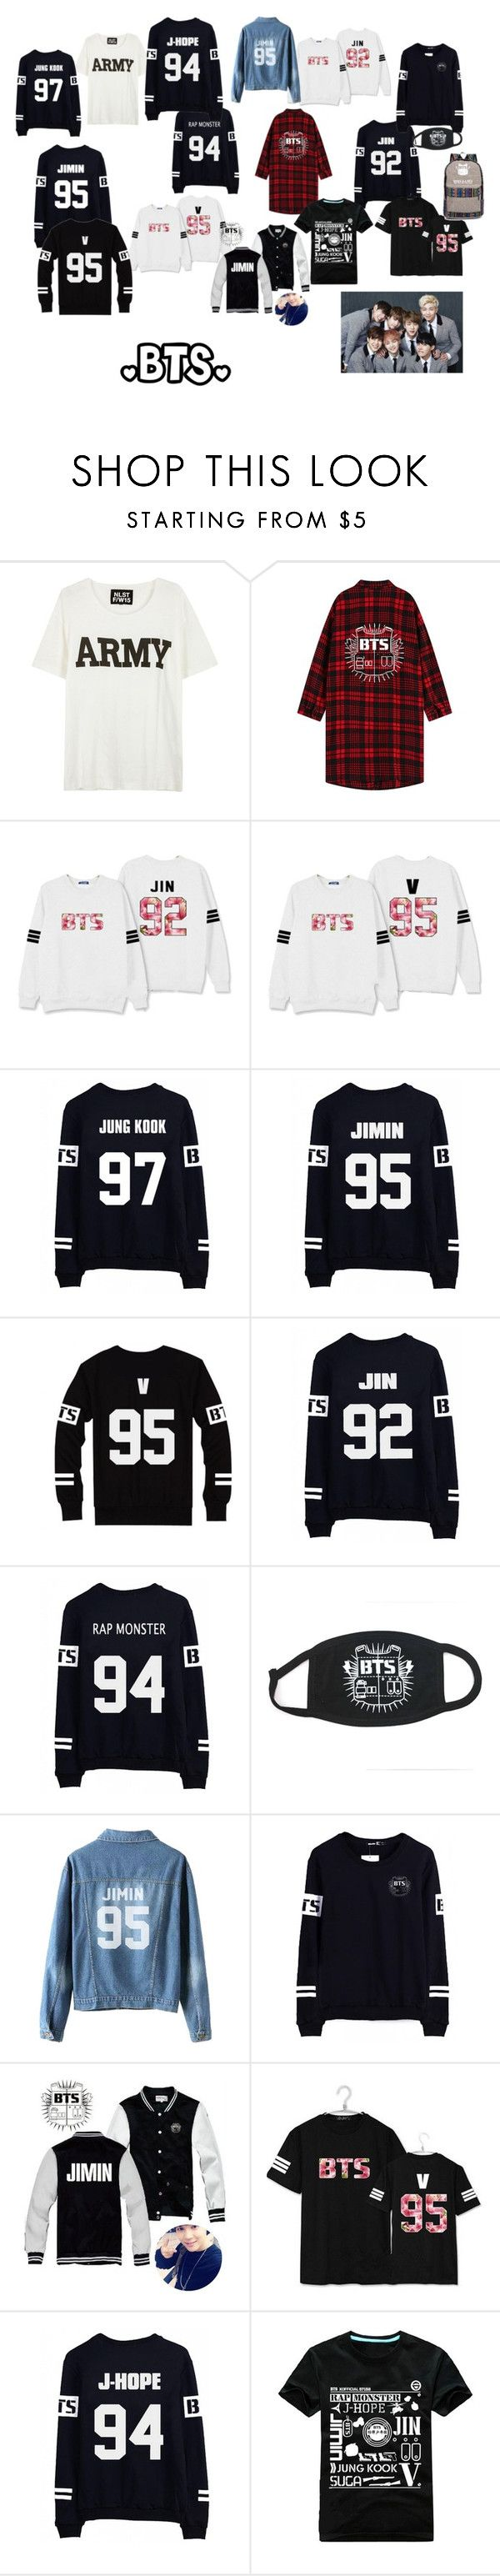 I have the white one with flowerprint and jimins name on the back~